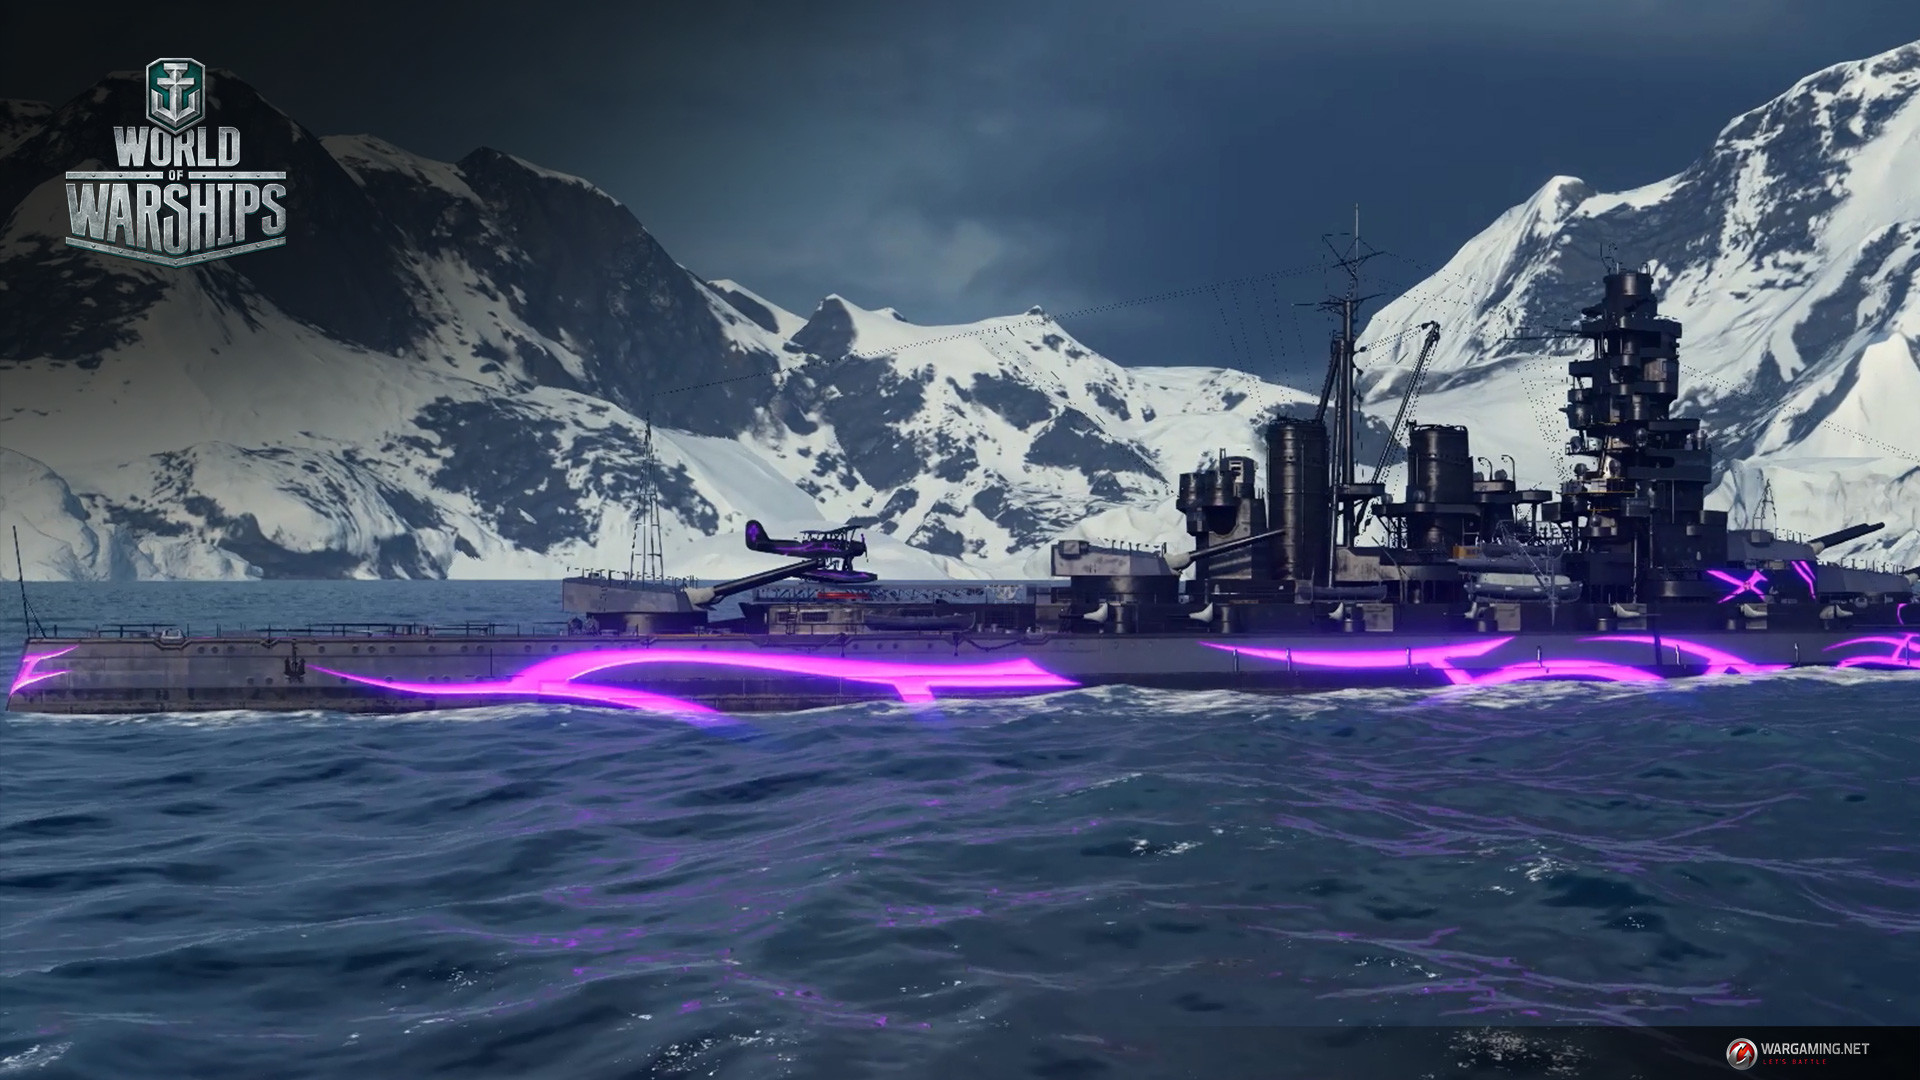 World of Warships is part of the Wargaming suite of unified free-to-play  battle games.